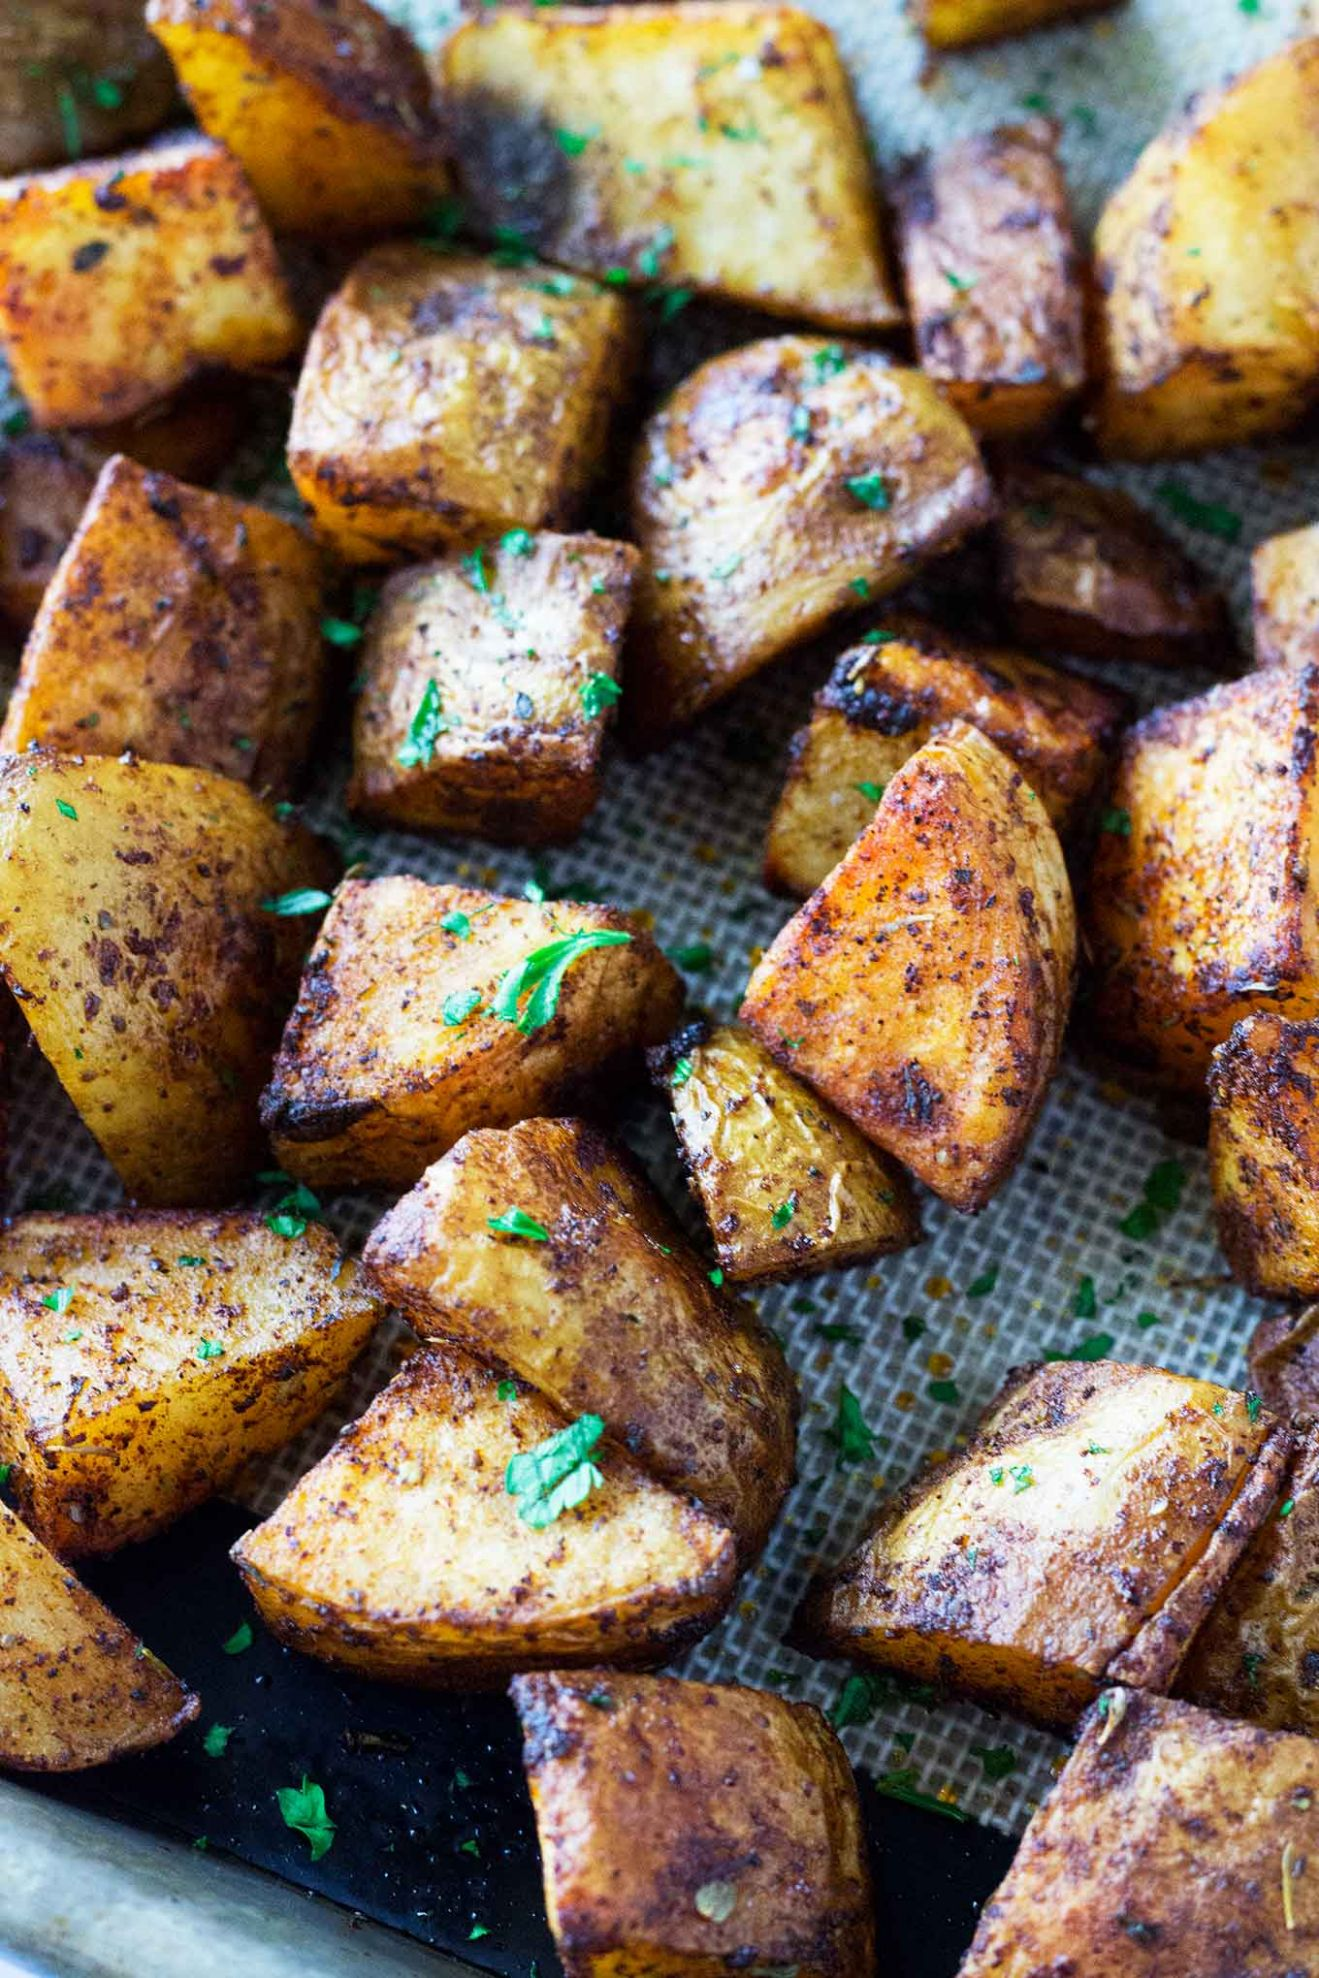 Roasted Russet Potatoes